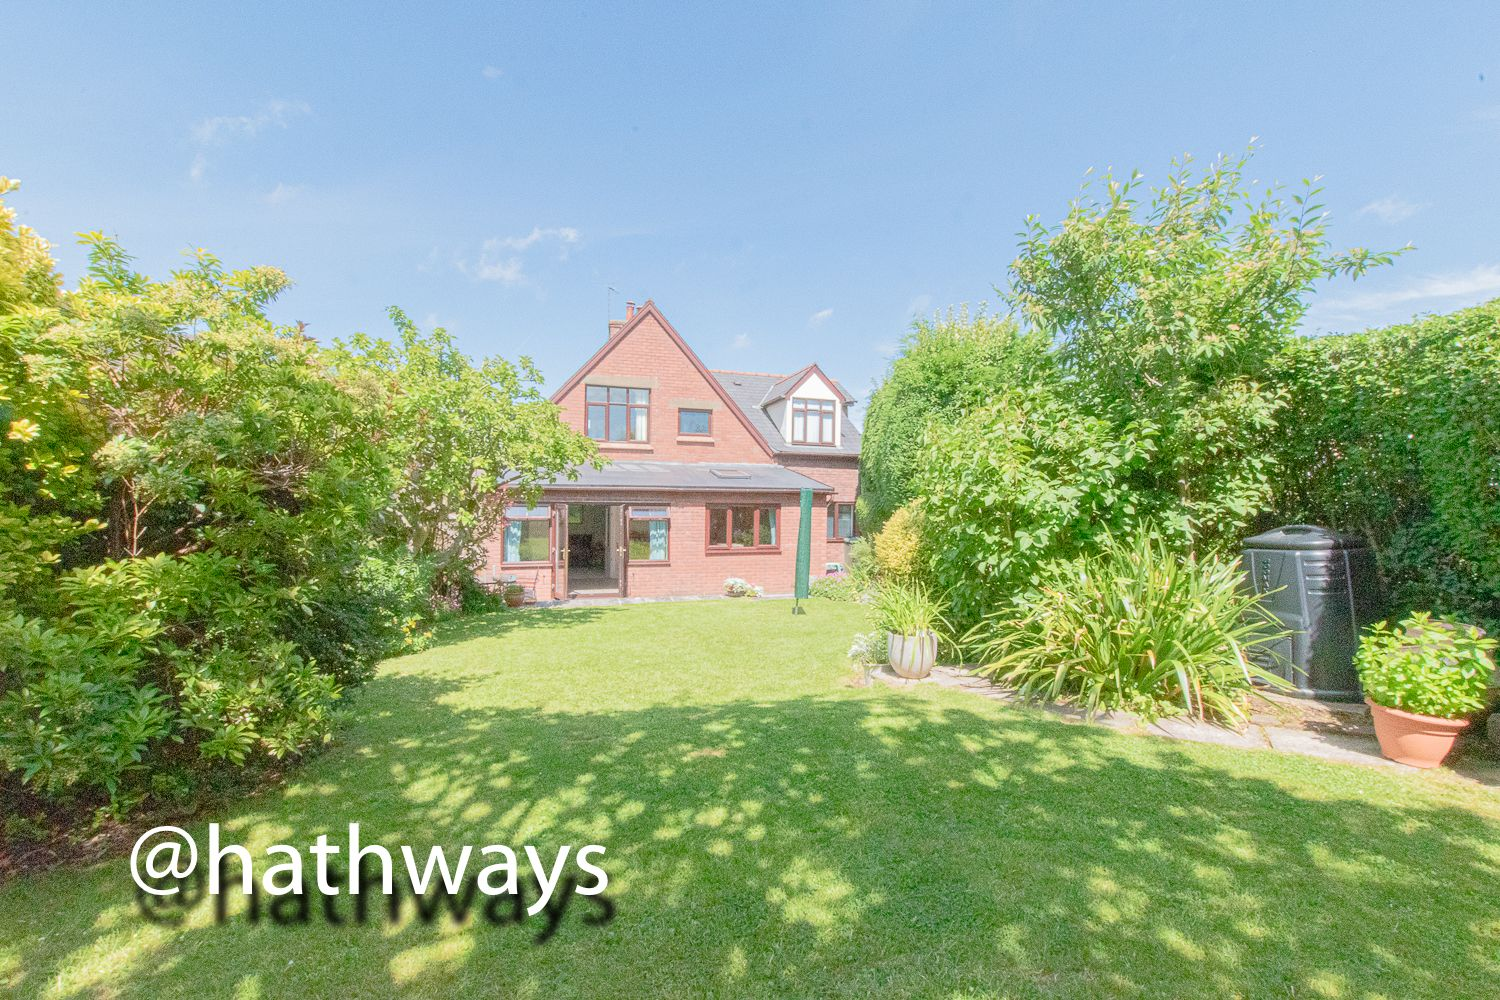 4 bed house for sale in Ashford Close South 54